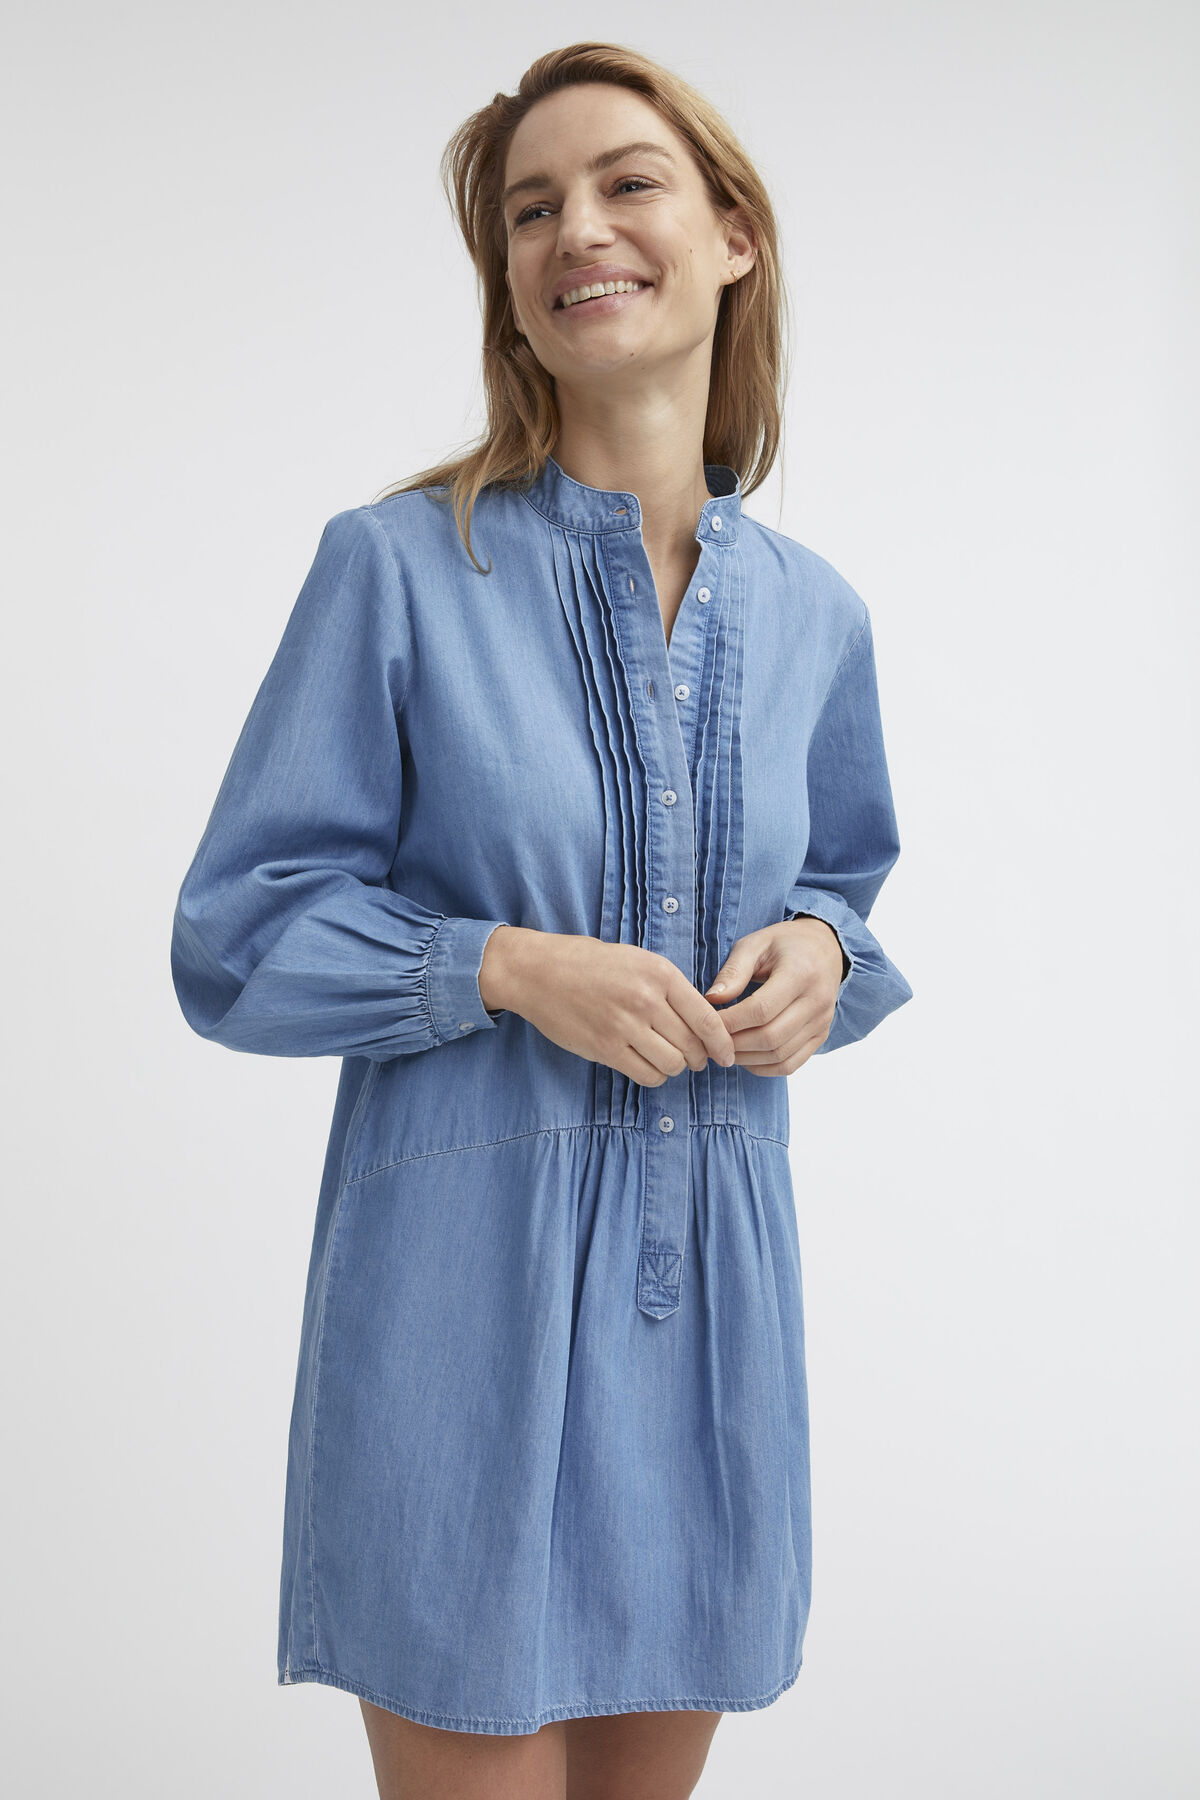 SYLVIE DRESS Cotton & Tencel Blend - Mini